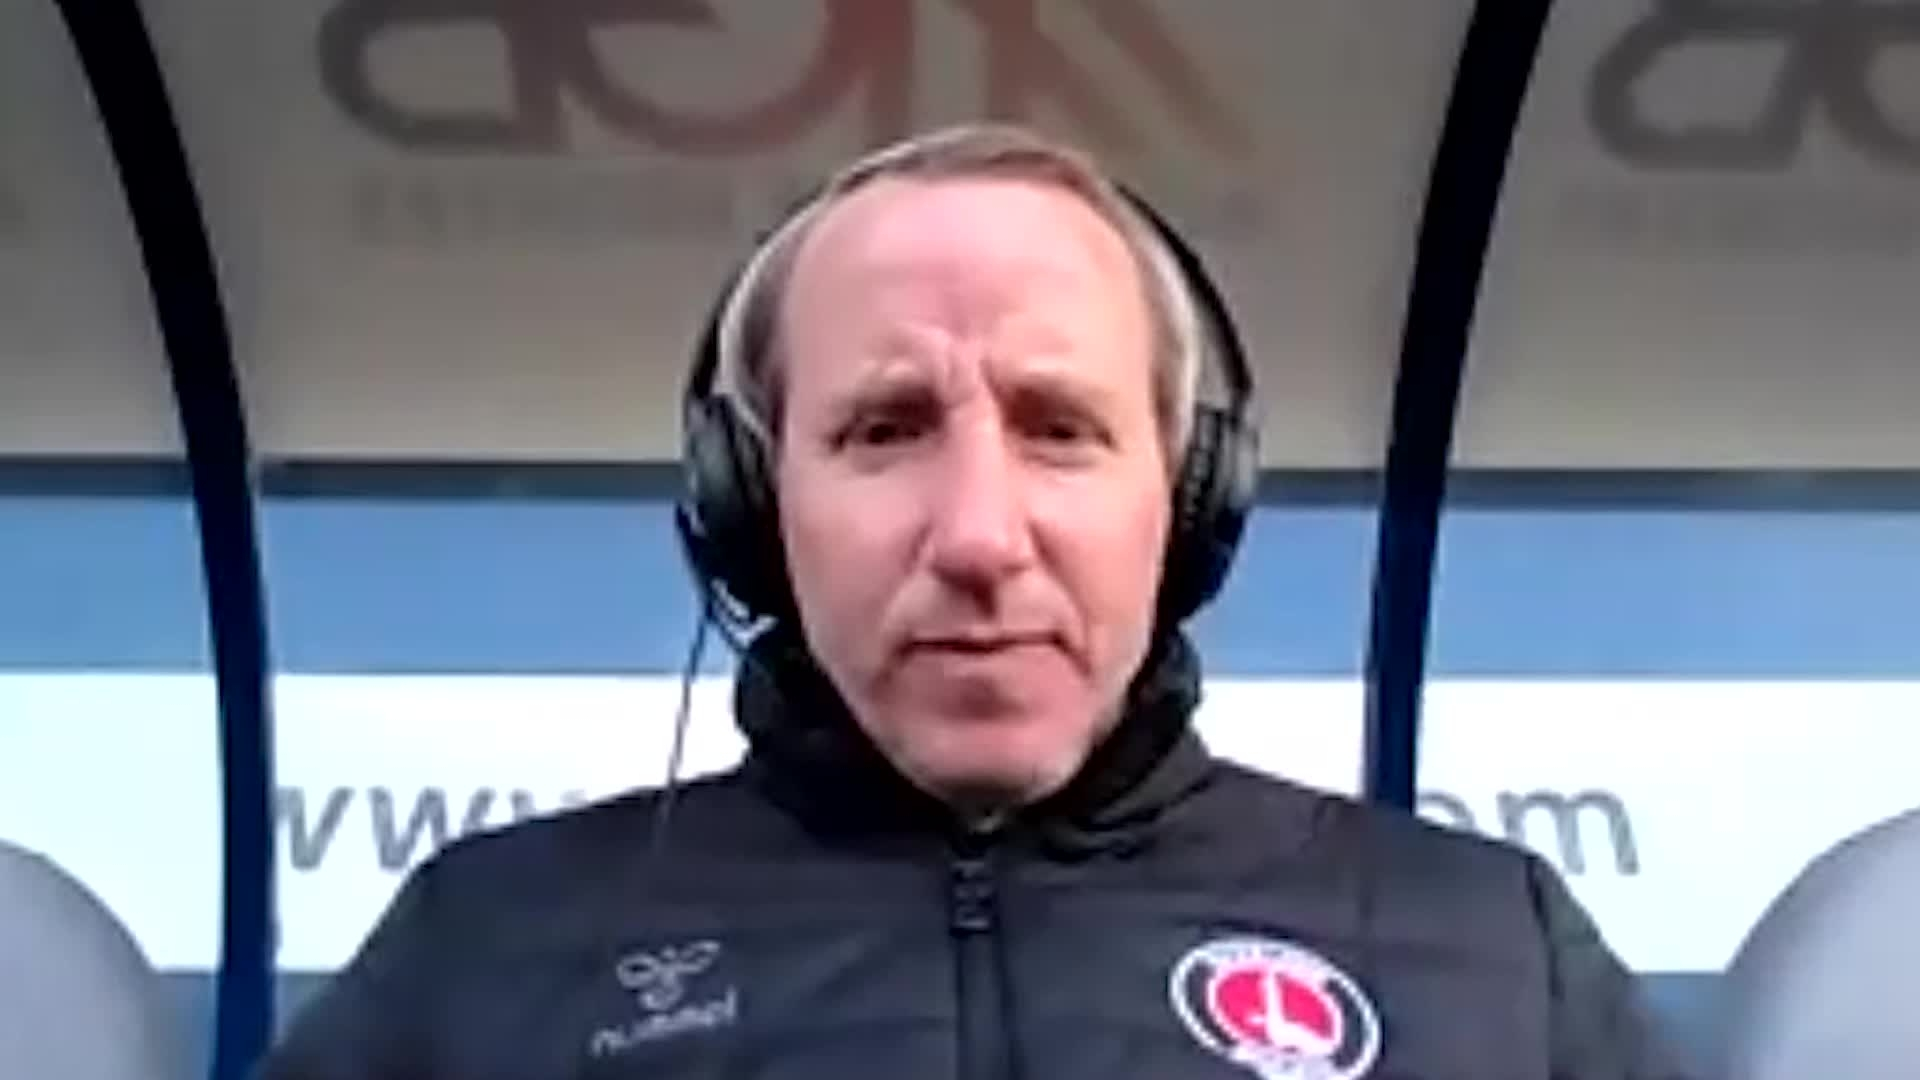 POST-MATCH | Lee Bowyer's post-Oxford United press conference (March 2021)